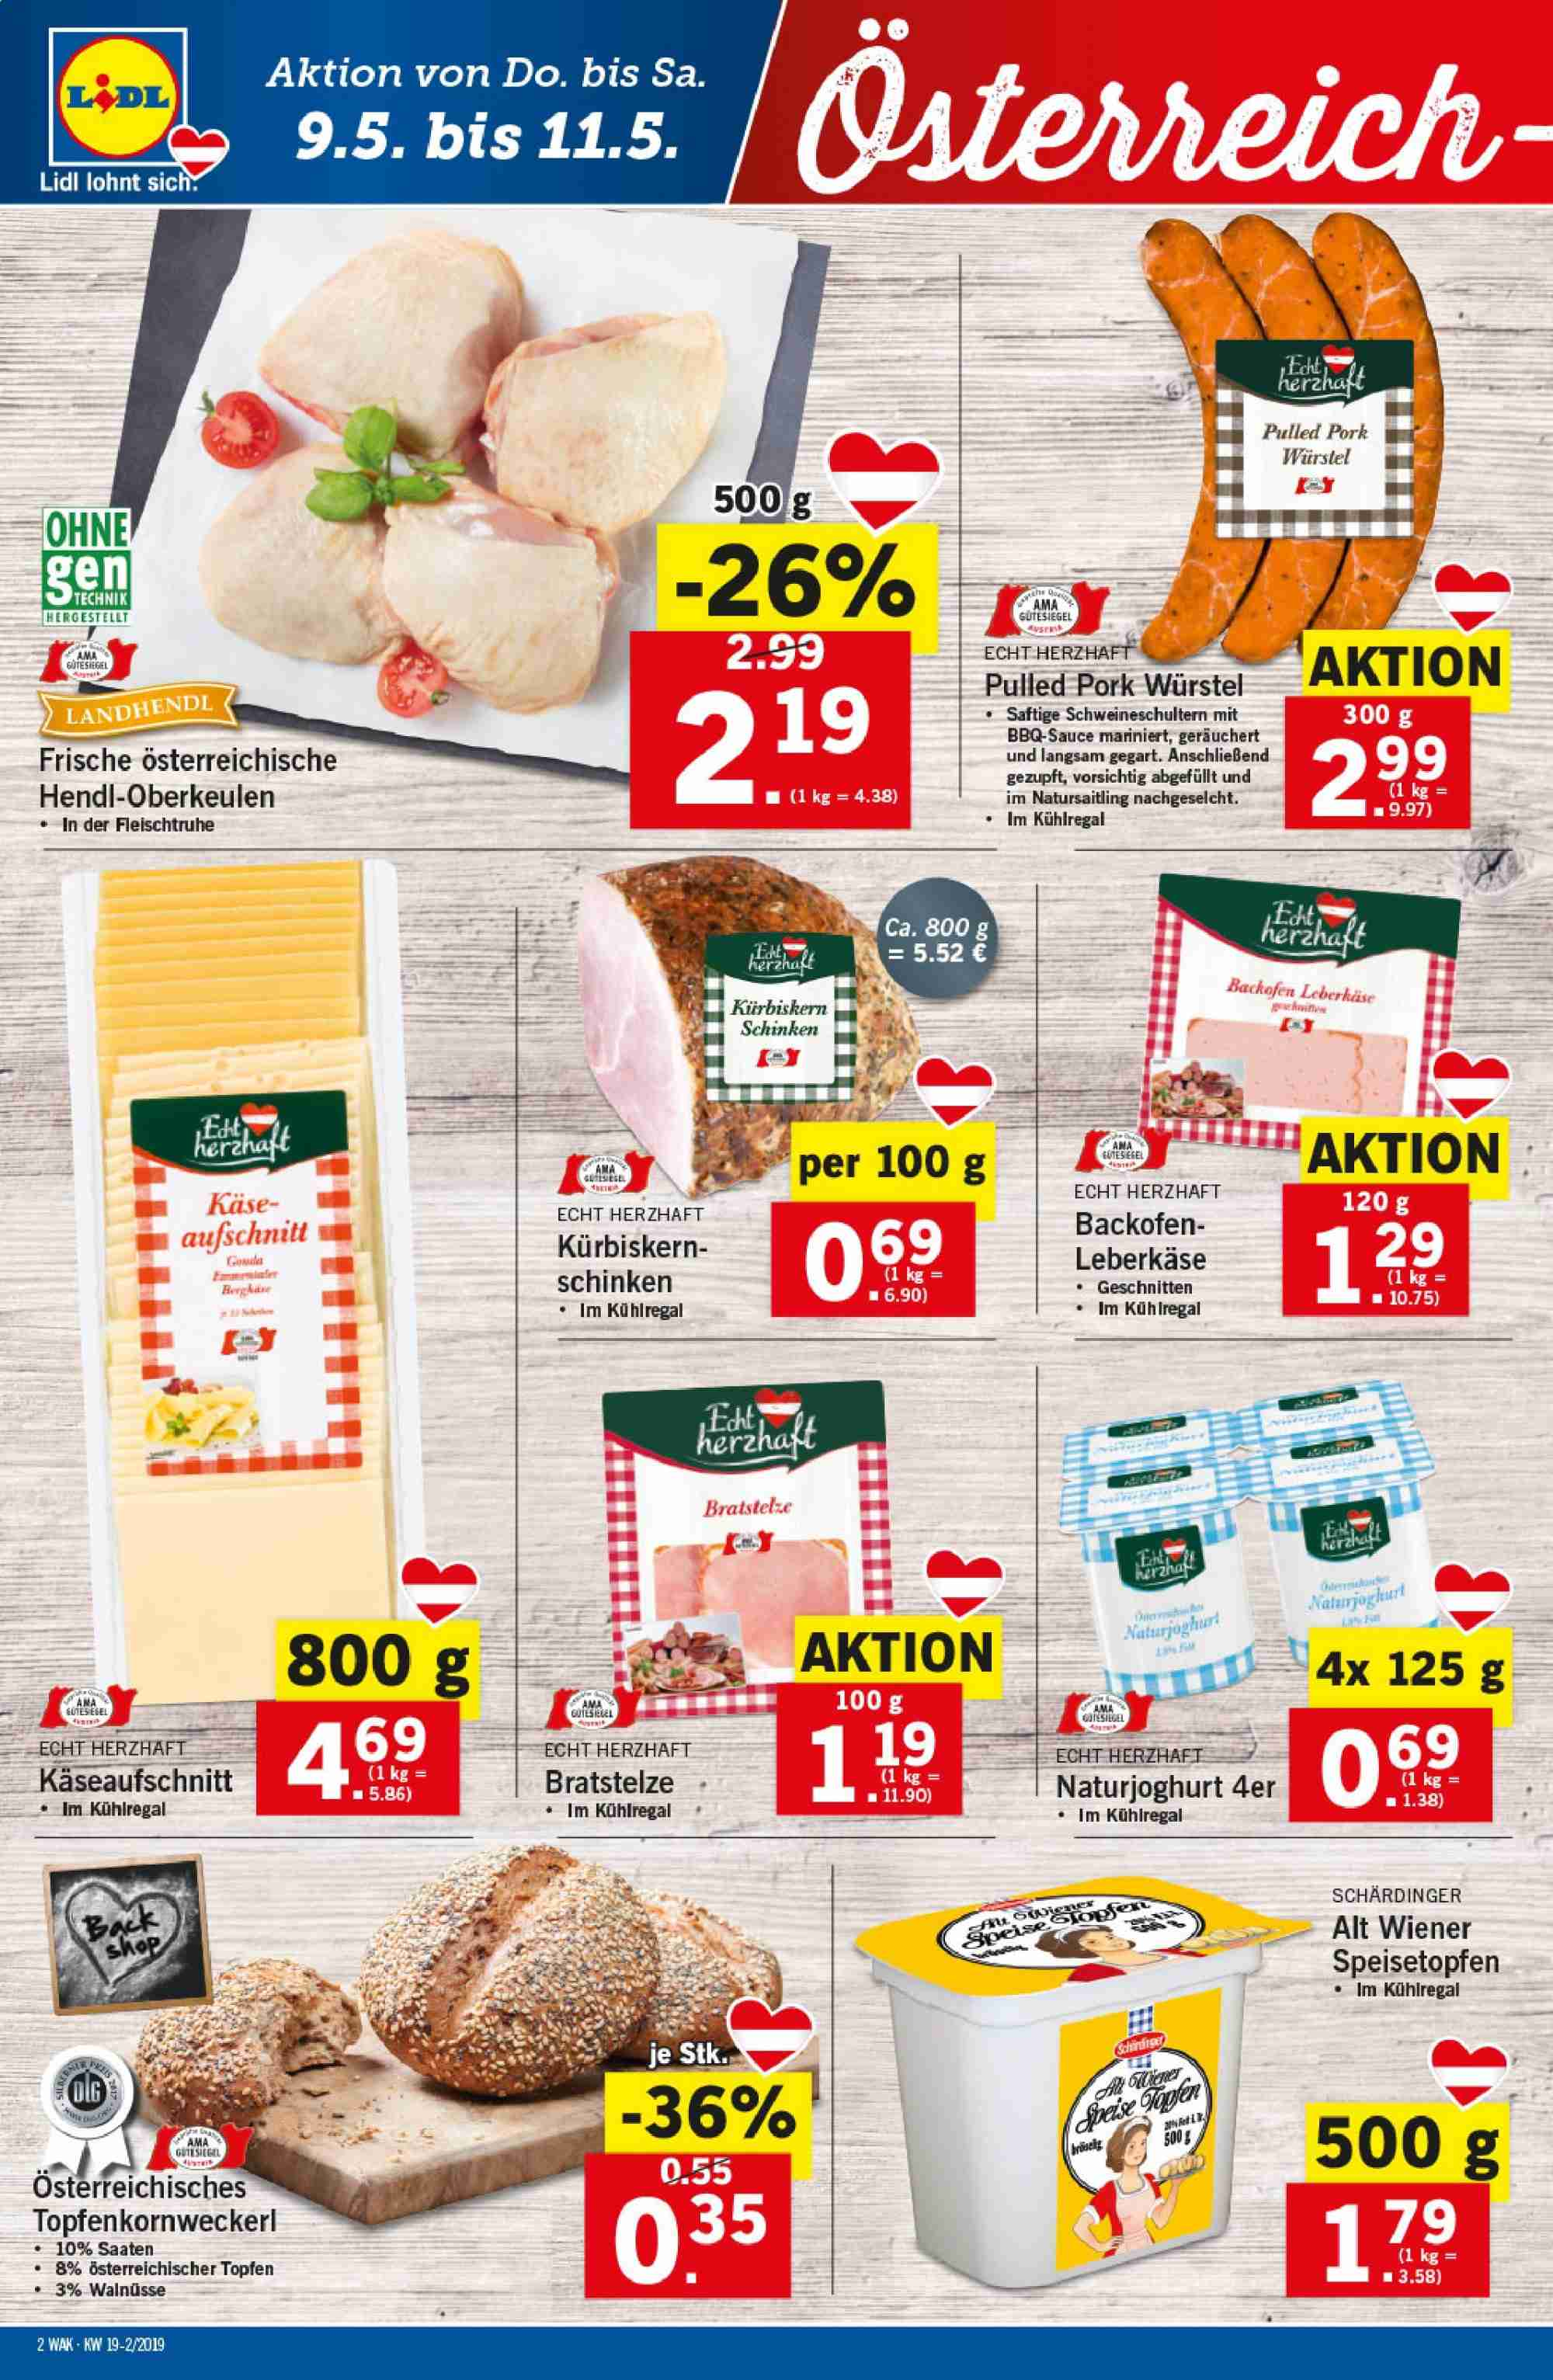 Angebote Lidl - 9.5.2019 - 15.5.2019. Seite 2.